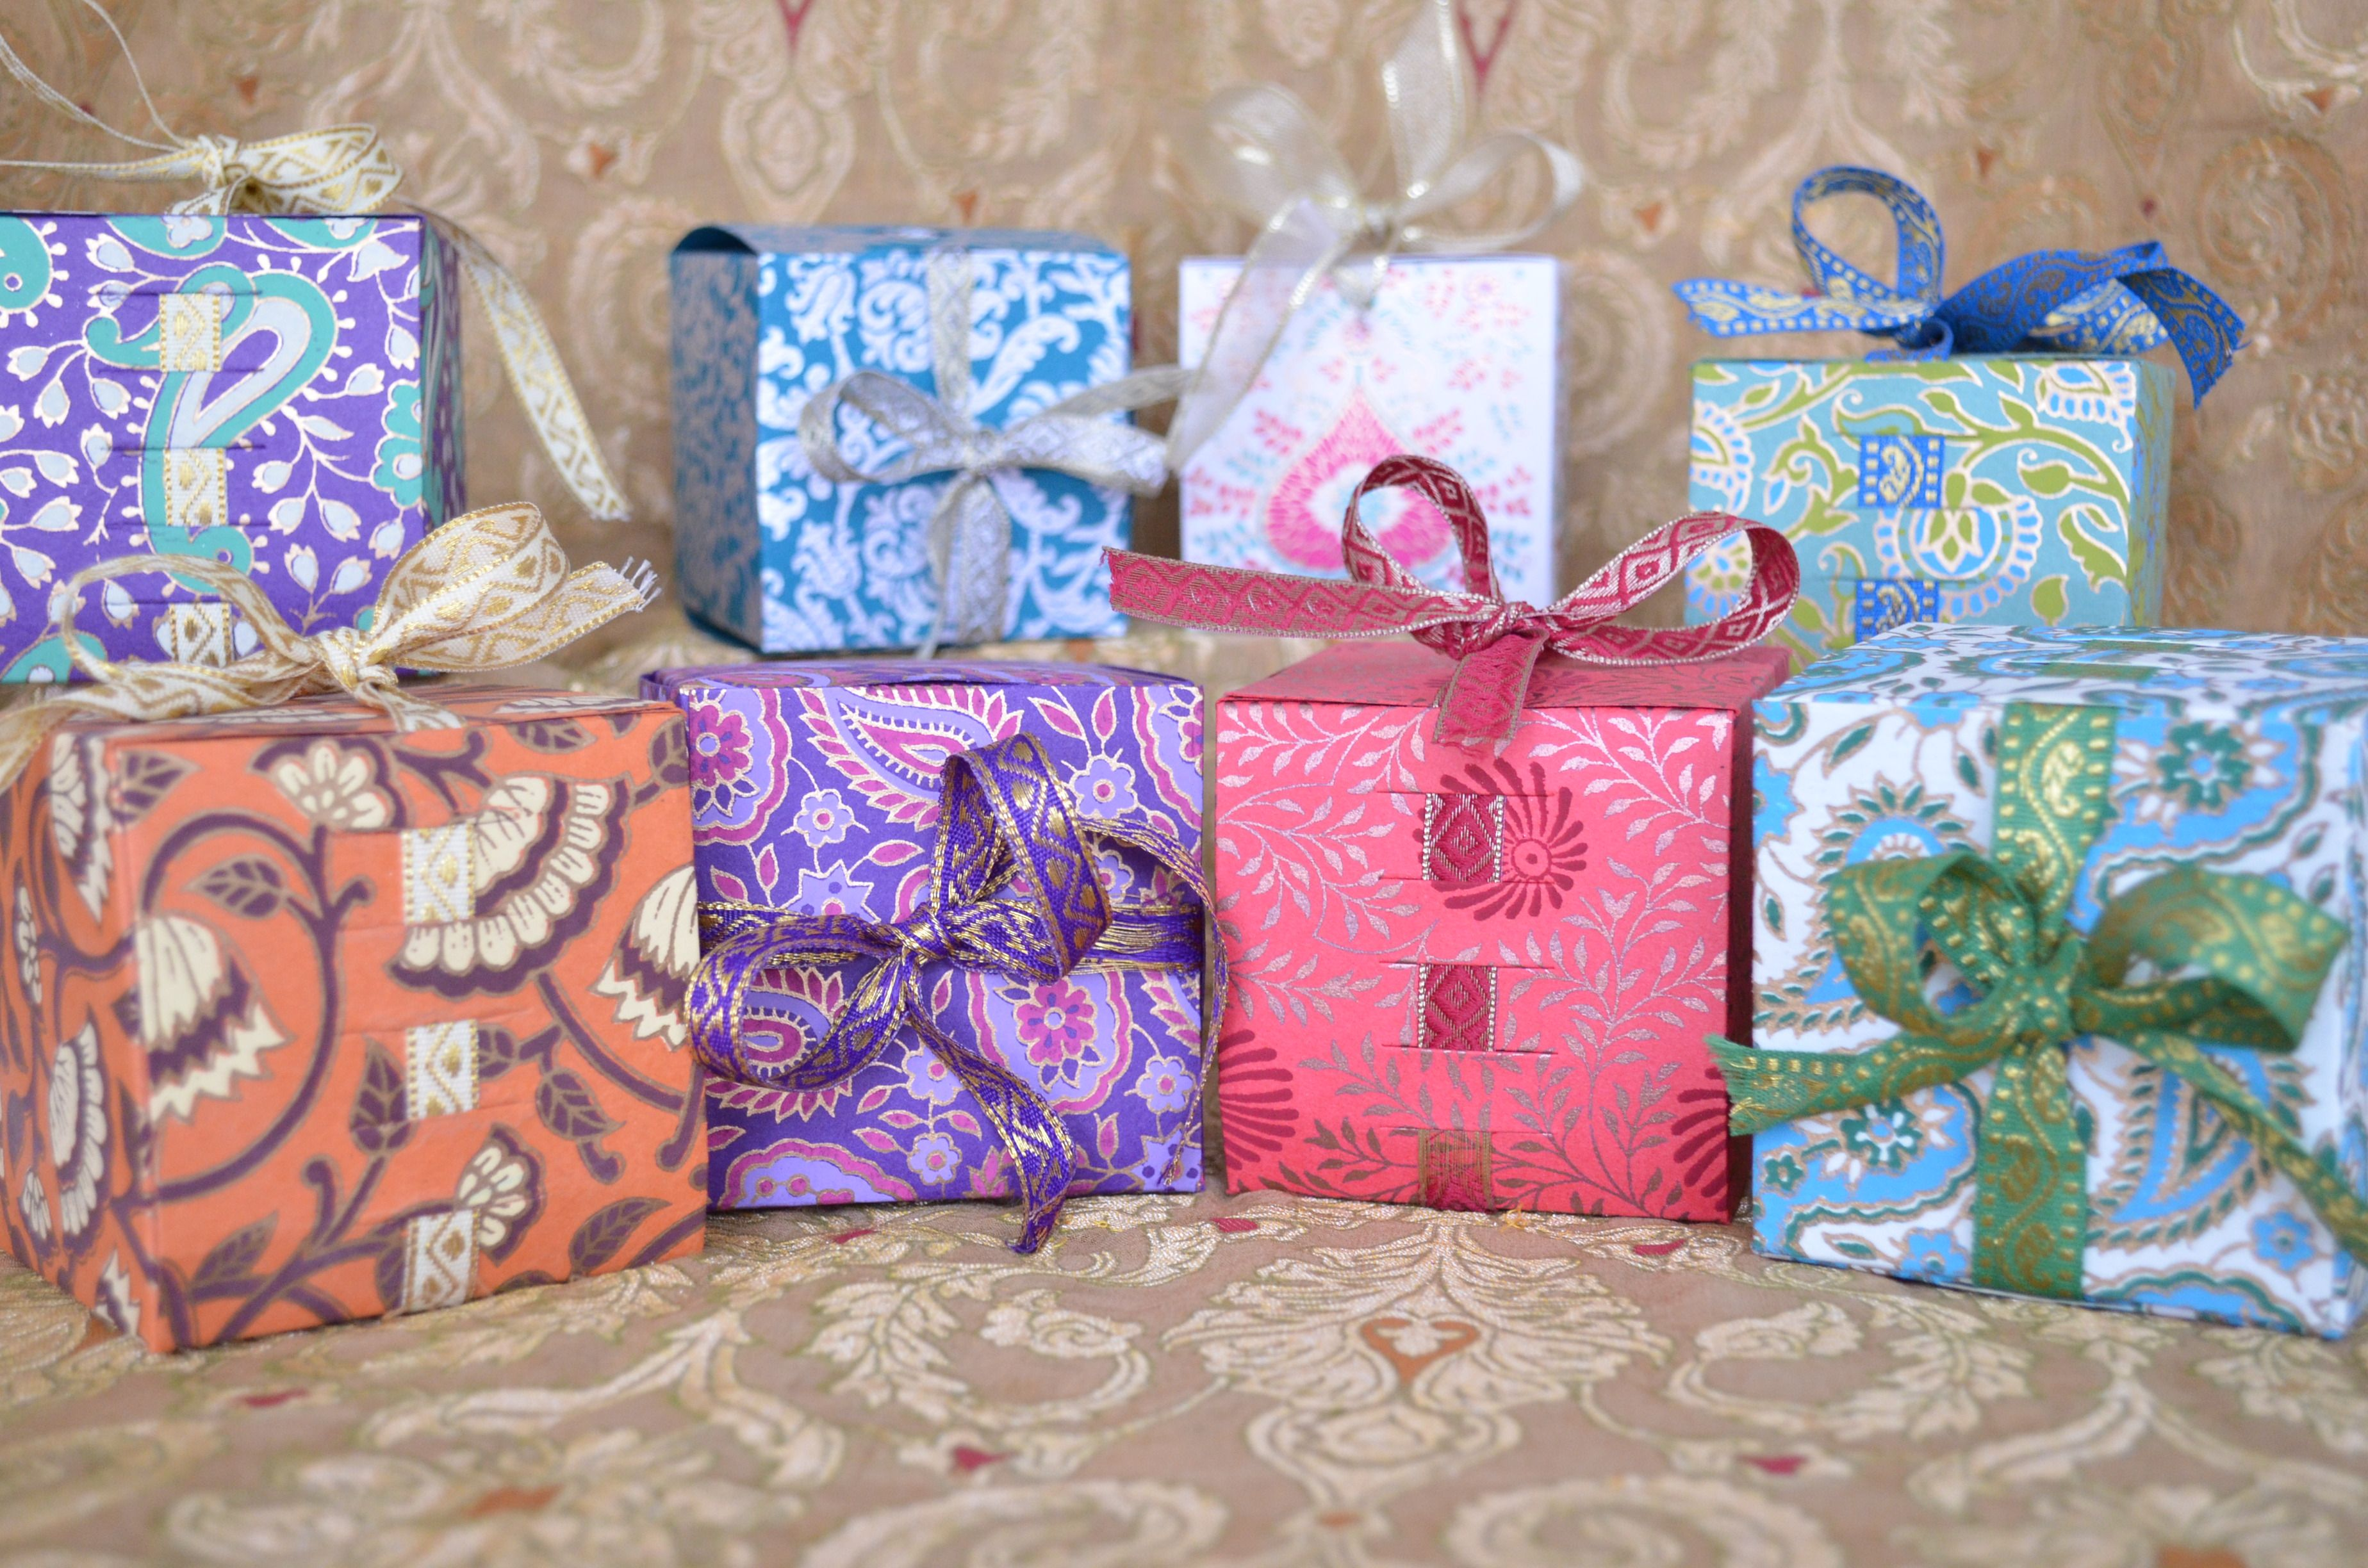 Eid Mubarak! Eid favor boxes available in all colors and designs ...